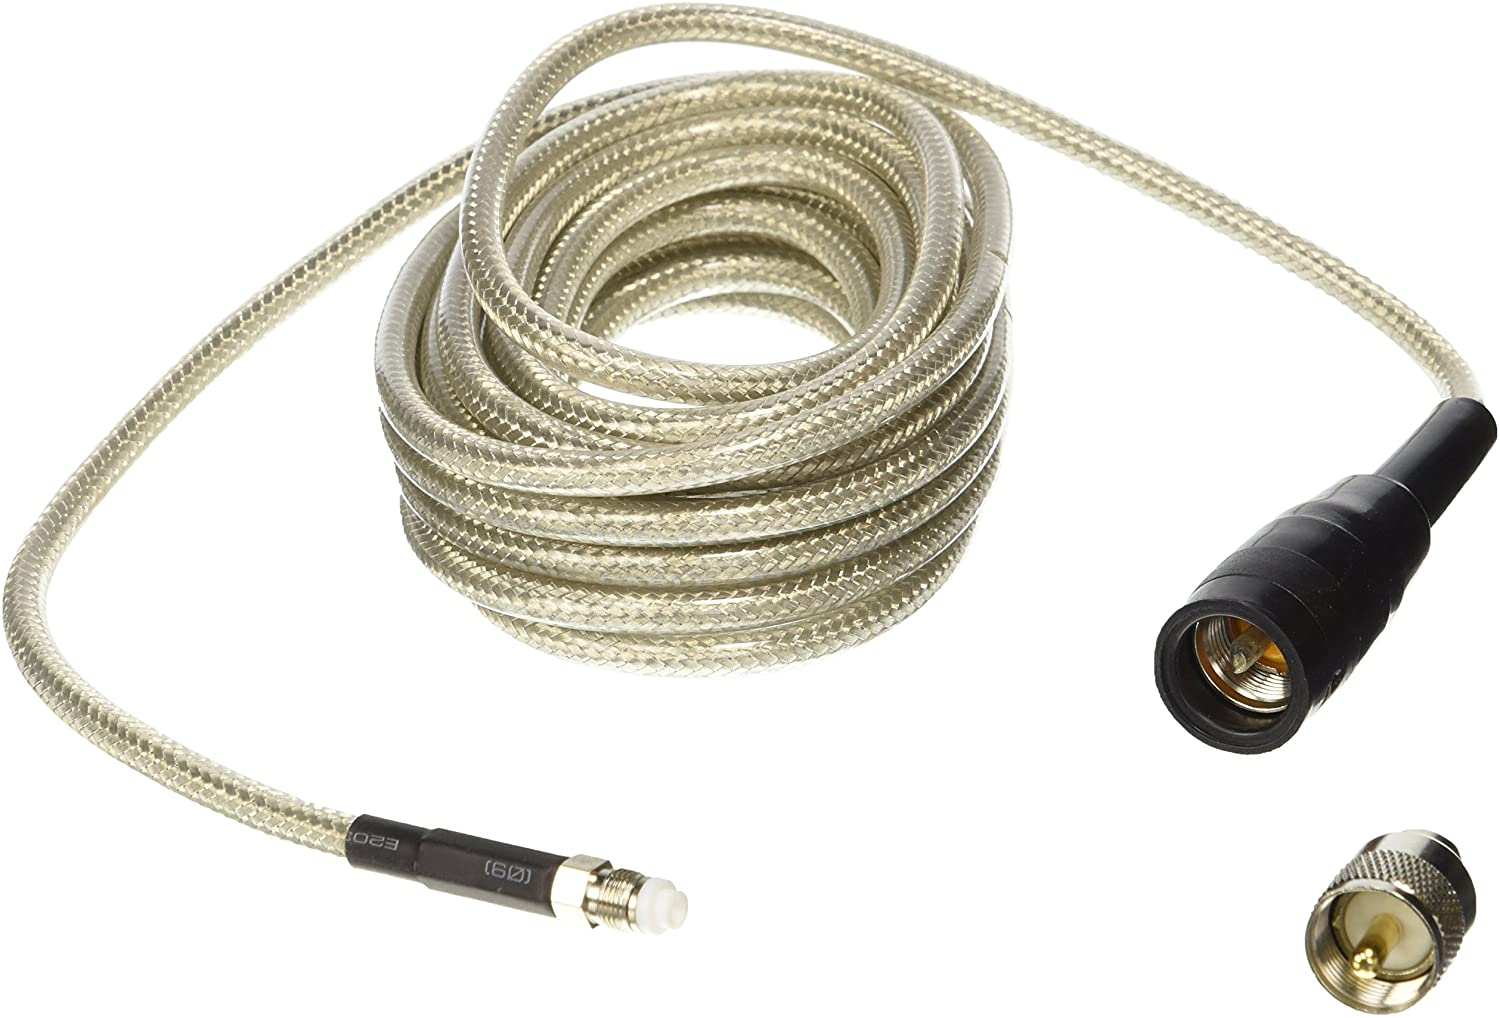 Amazon.com: Wilson 305-830, cable coaxial Belden de 18  ...